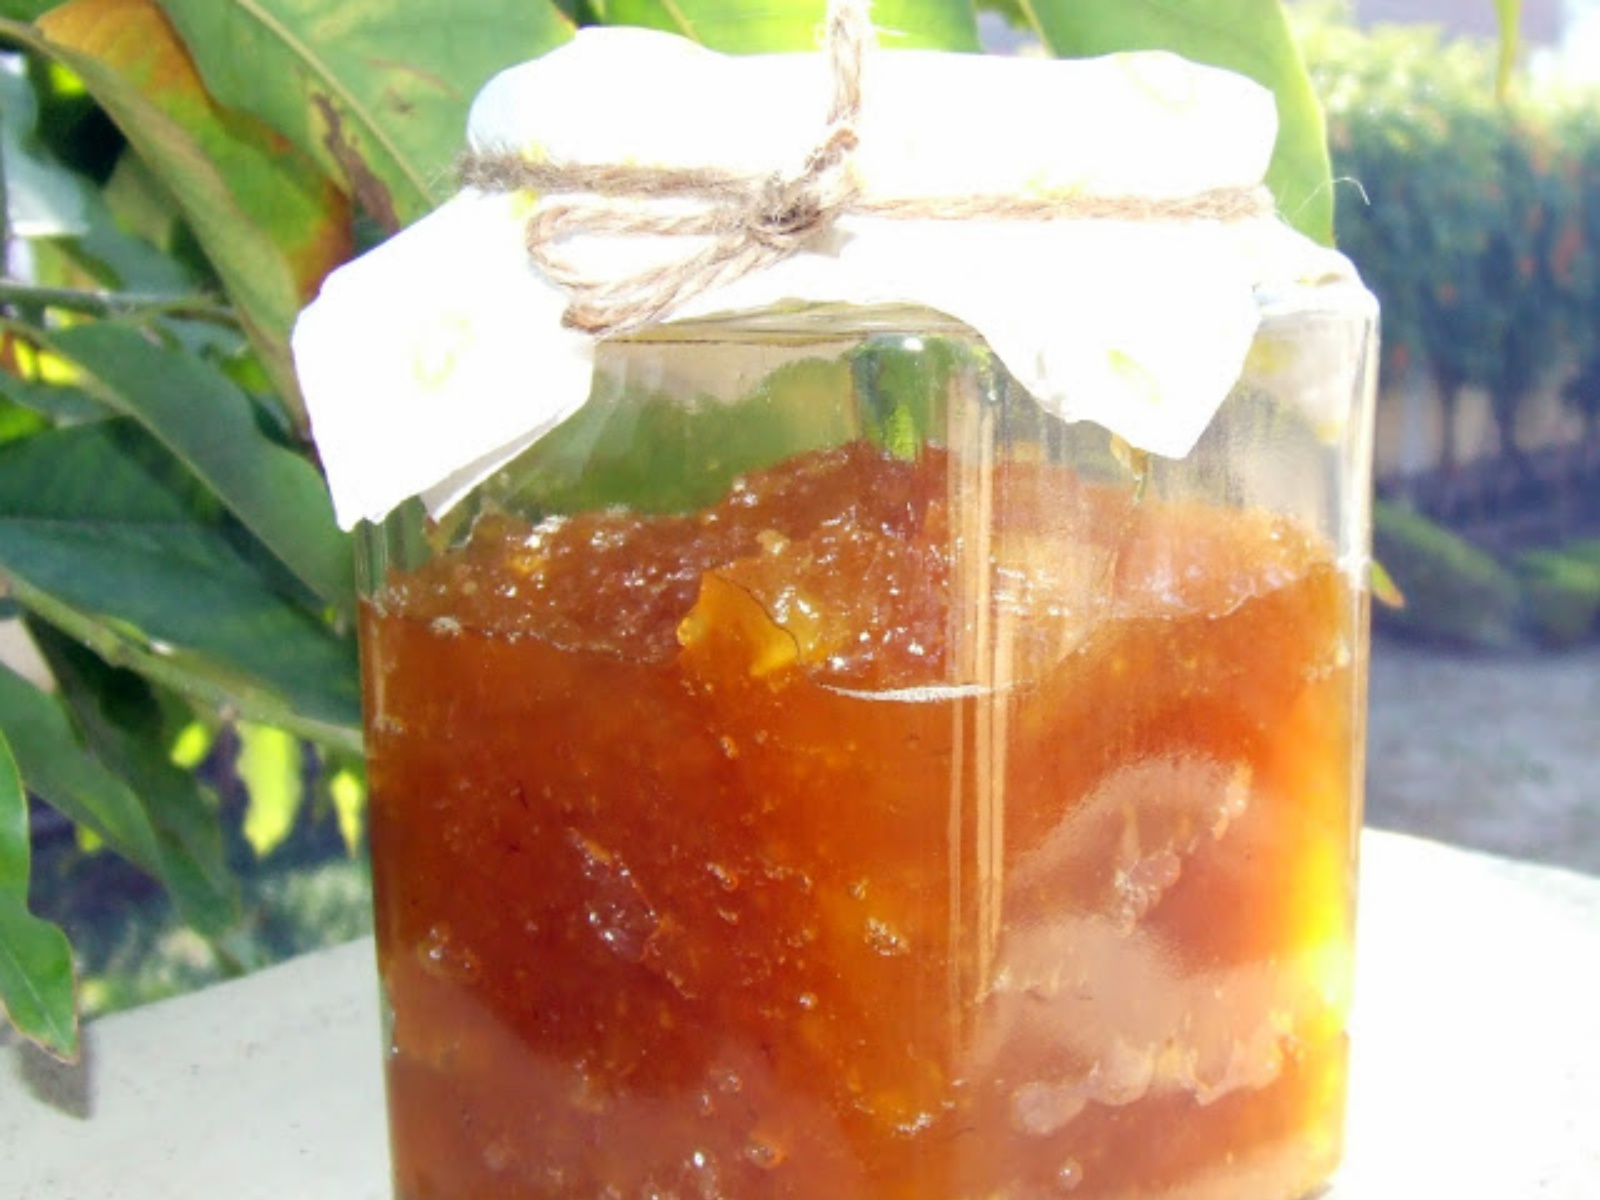 Vegan Pineapple Jam